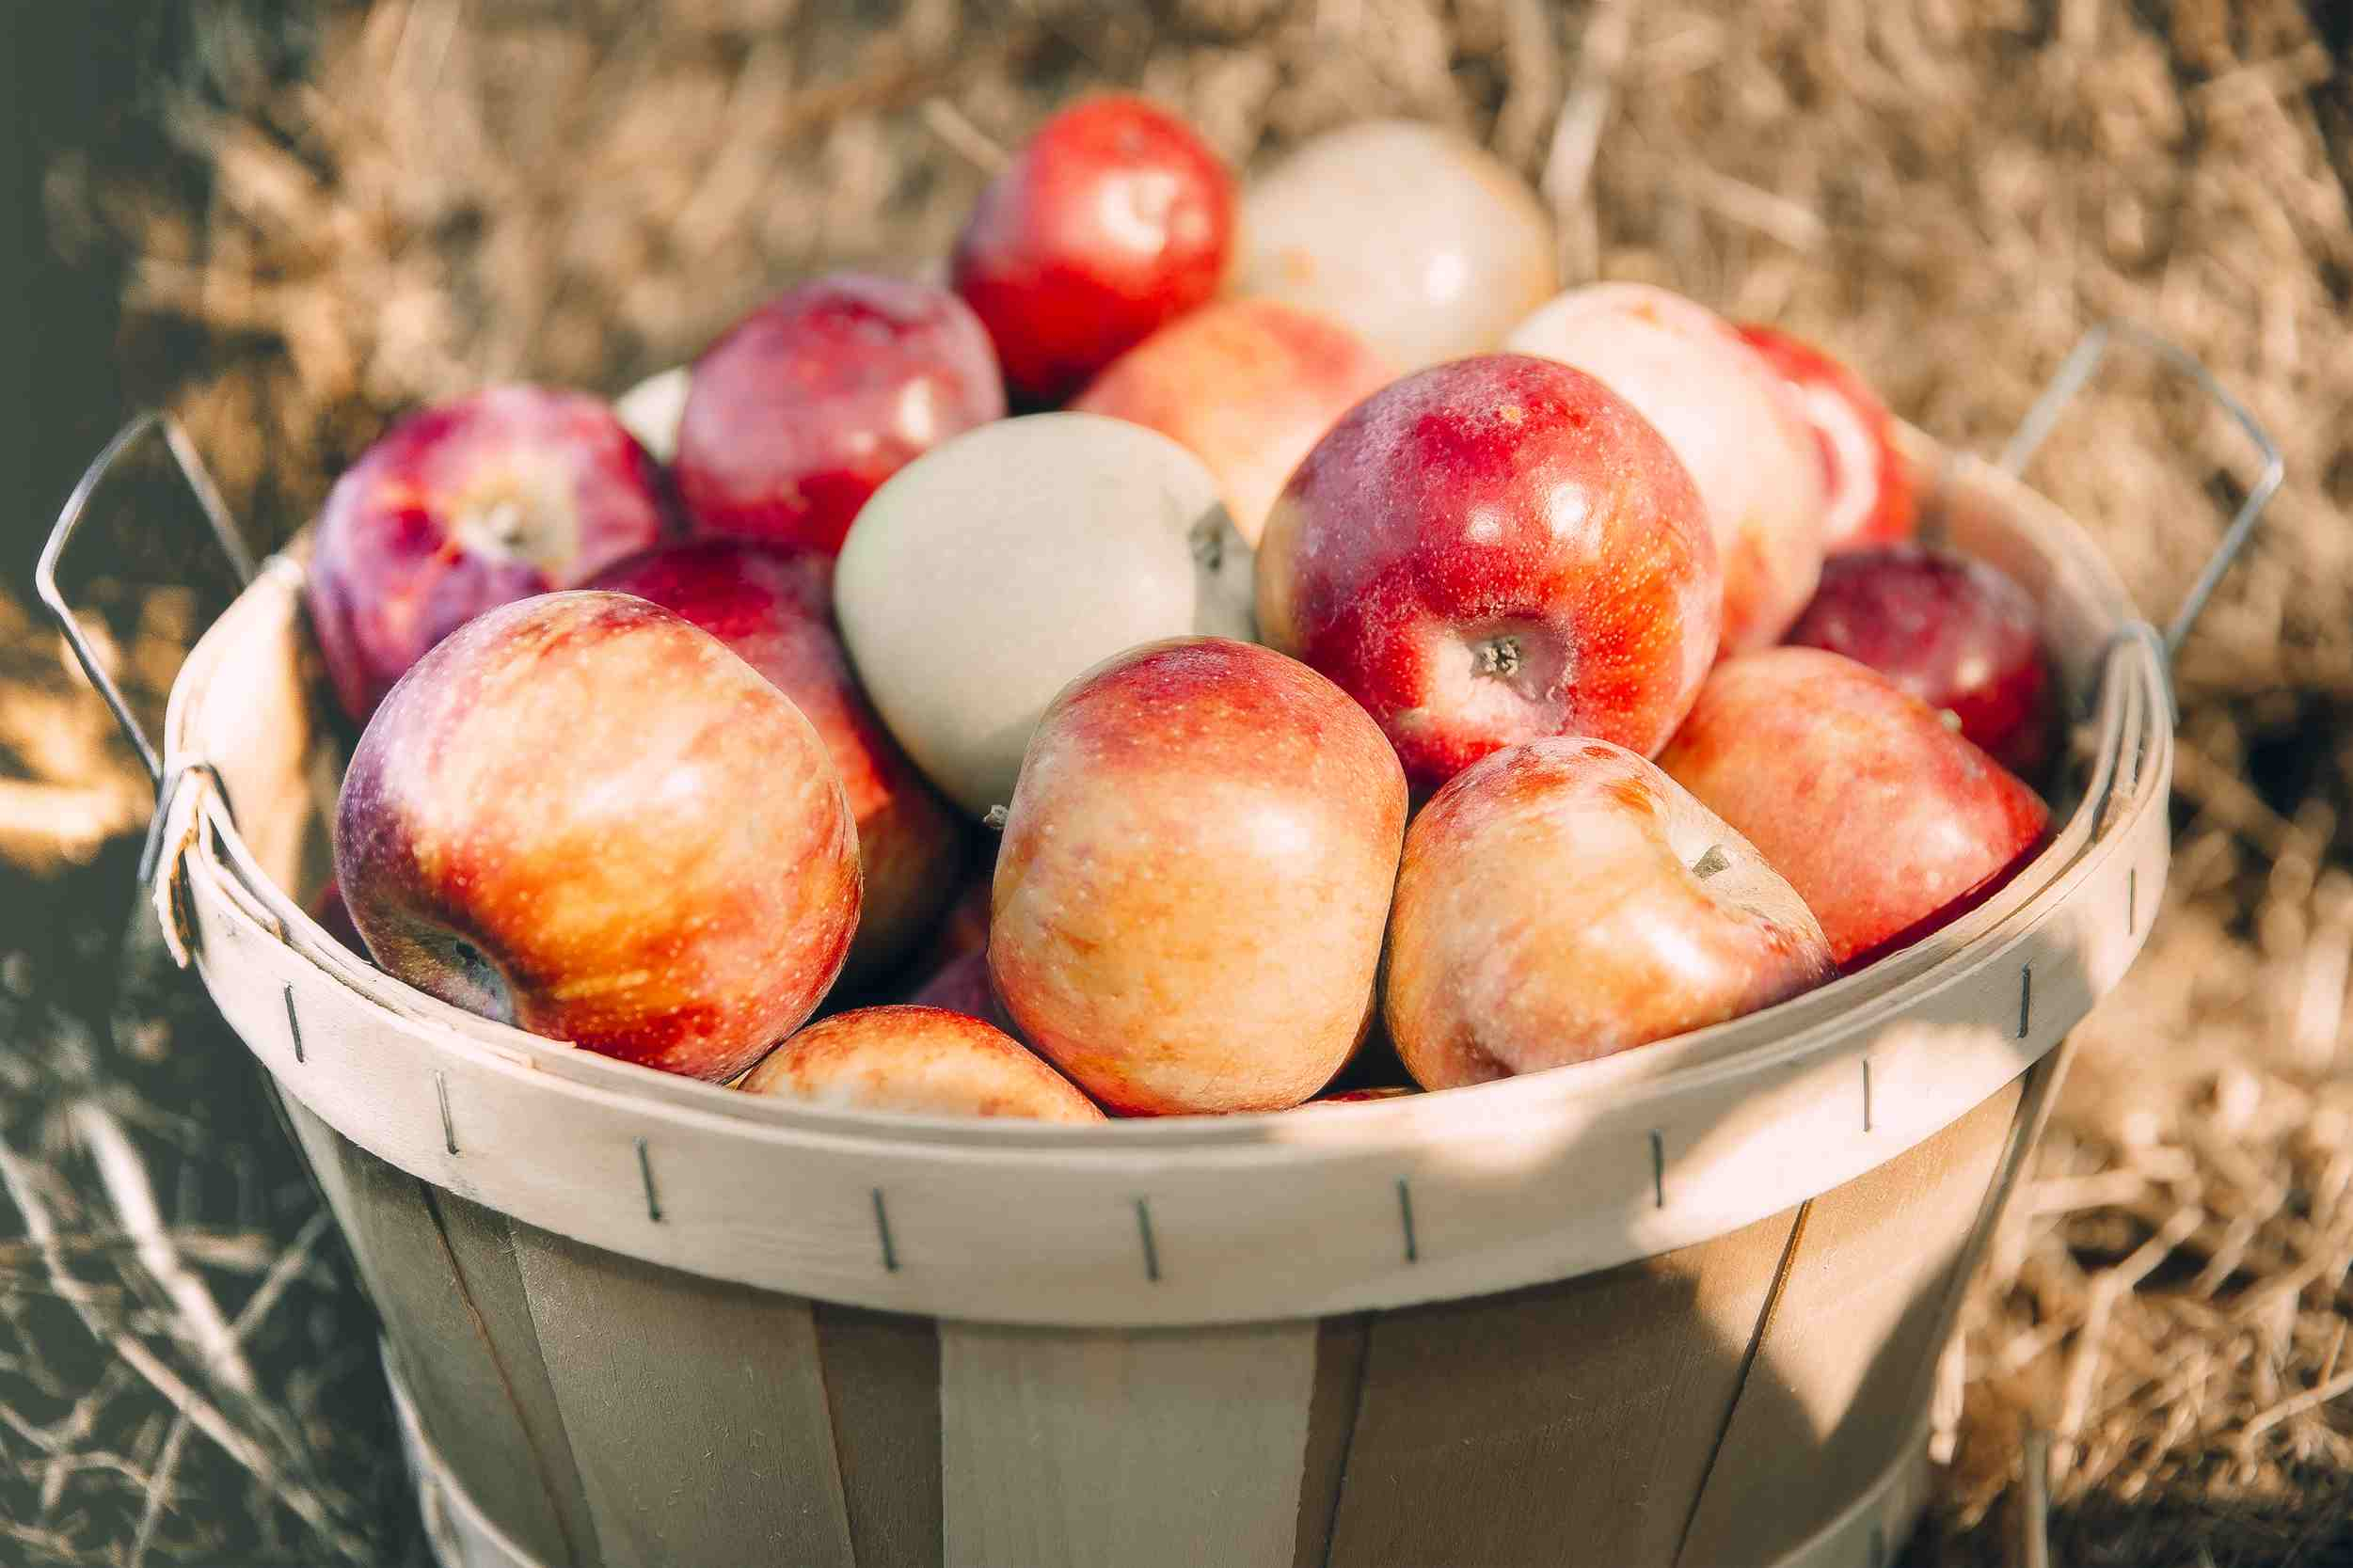 Basket of apples on the ground